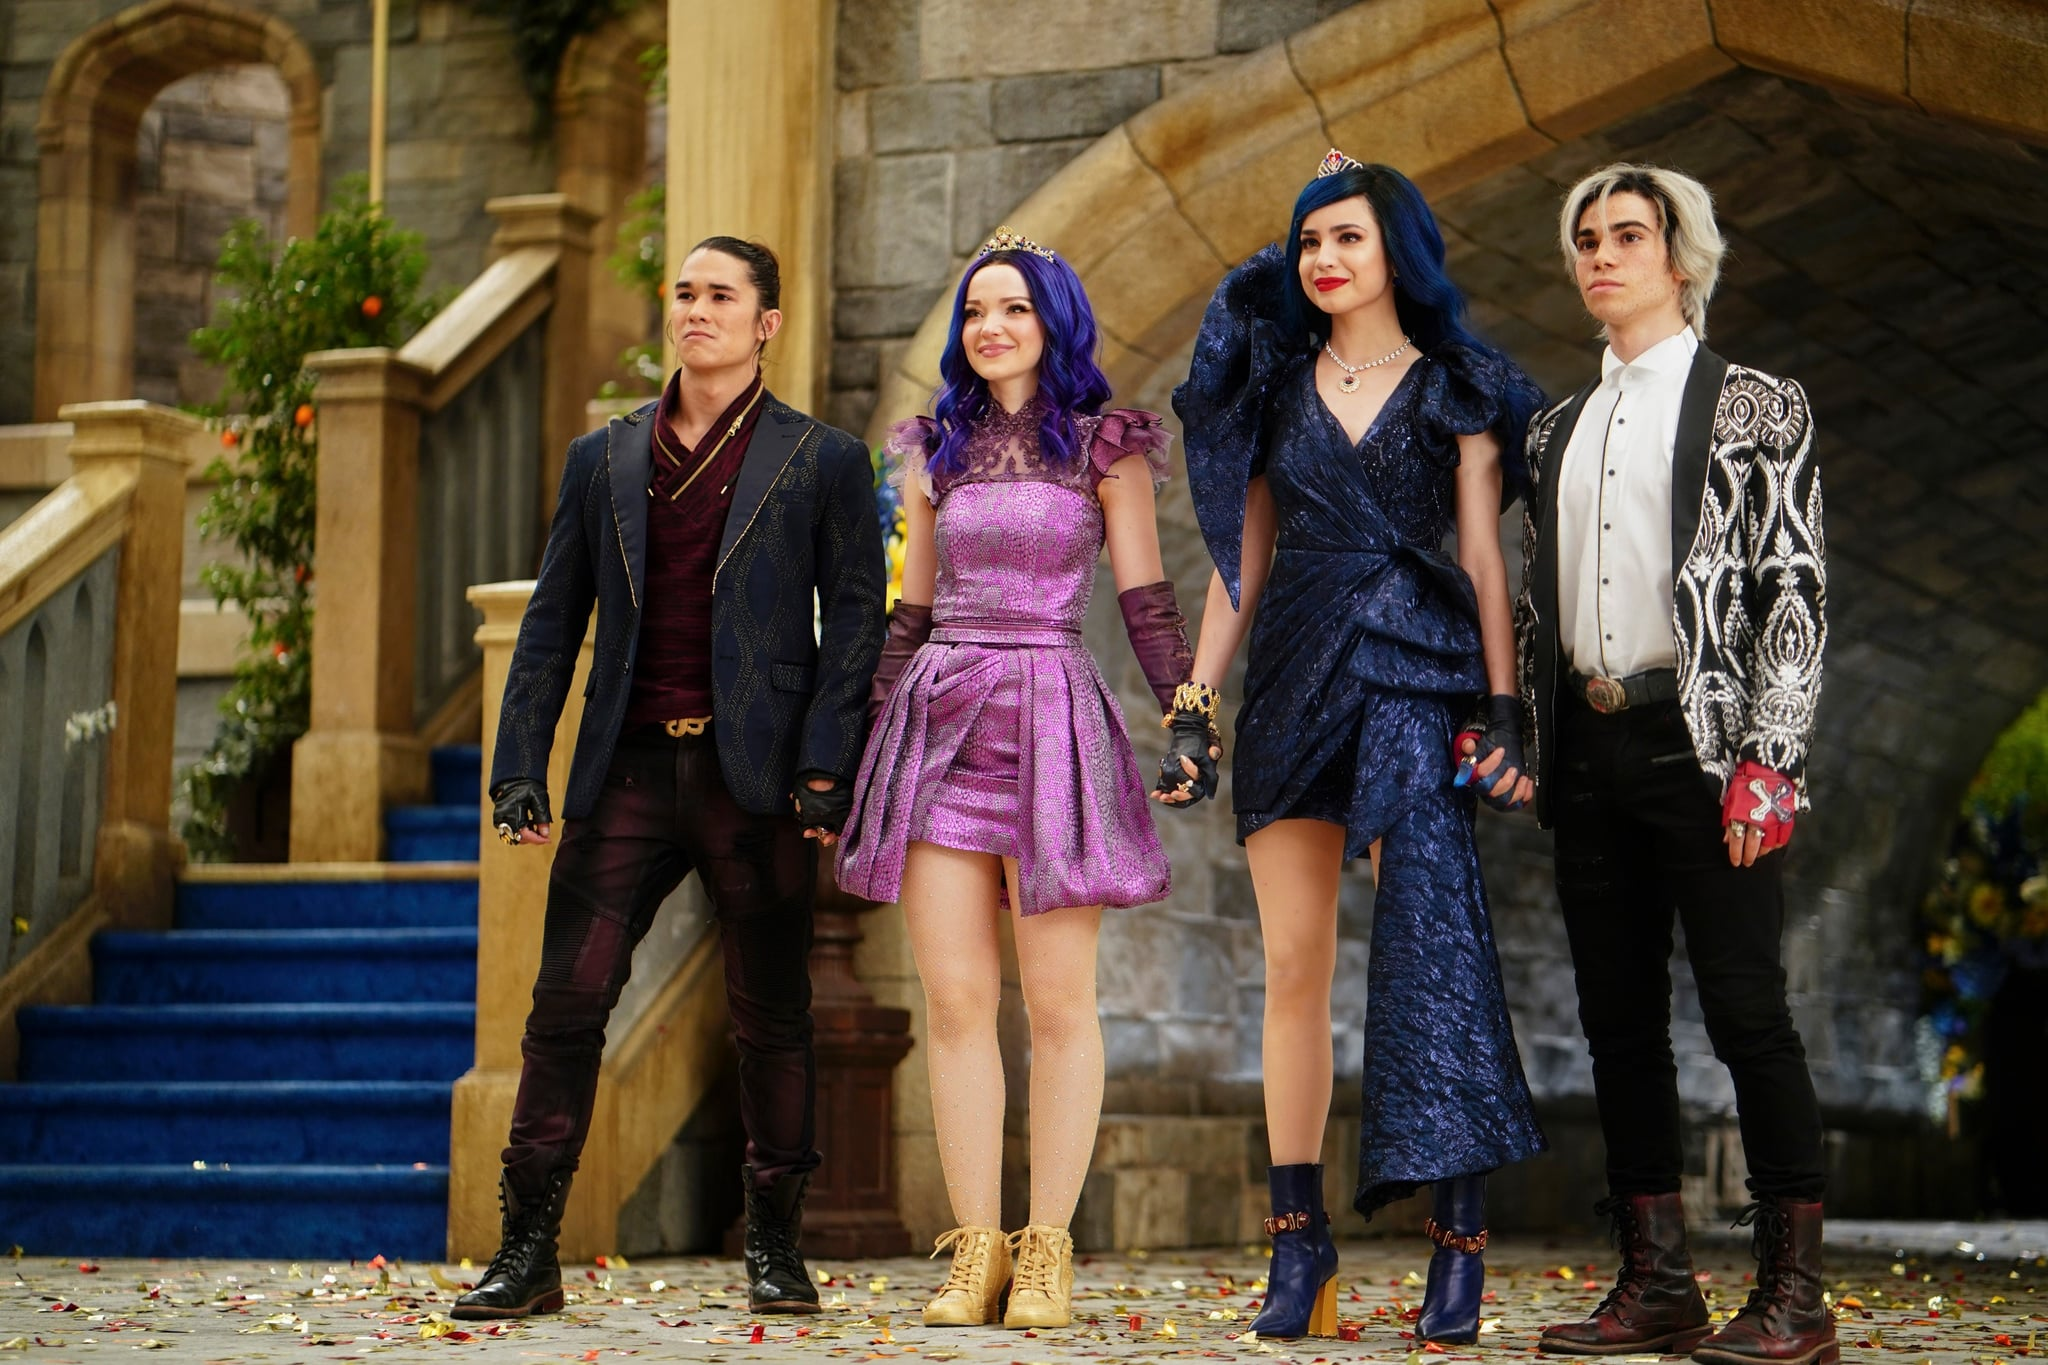 DESCENDANTS 3, from left: BooBoo Stewart, Dove Cameron, Sofia Carson, Cameron Boyce, (aired August 2, 2019), photo: David Bukach / Disney Channel / courtesy Everett Collection